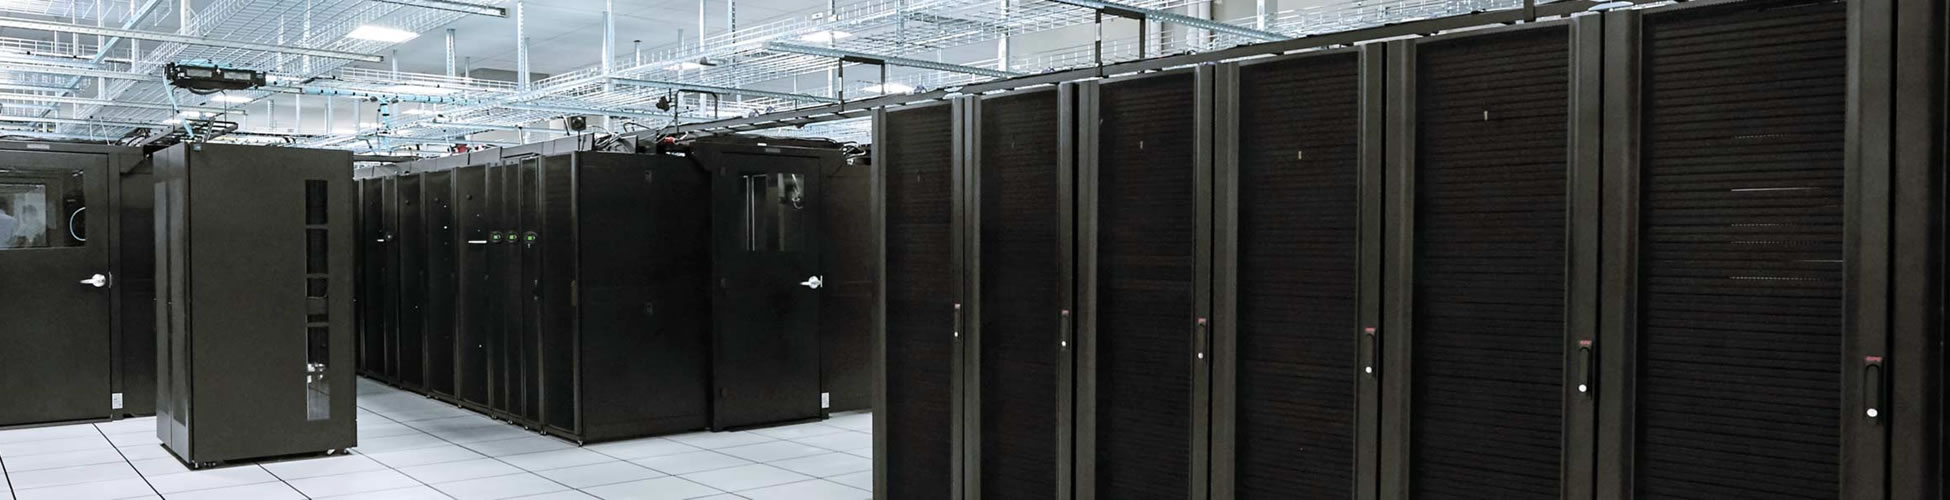 We Are Having a Dedicated Server Sale of 20% Off